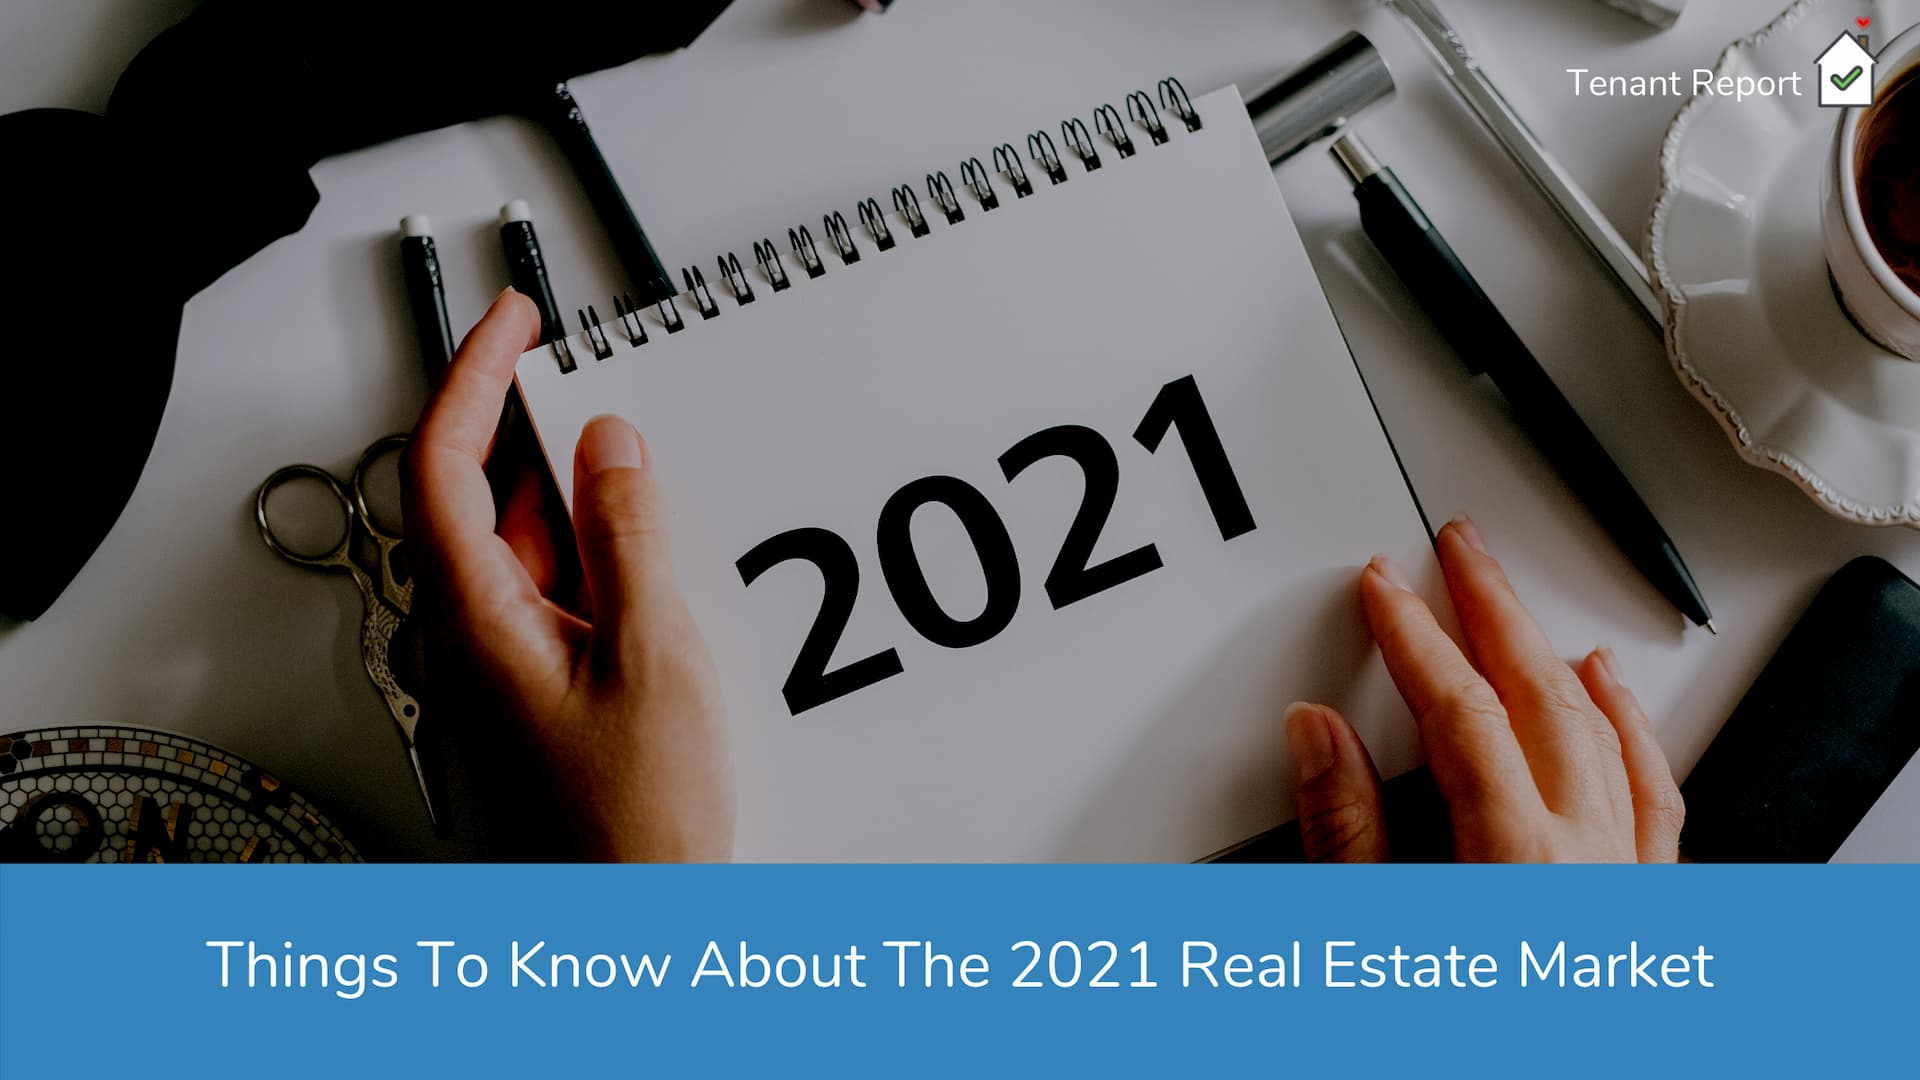 tenant-report-things-to-know-about-2021-real-estate-market